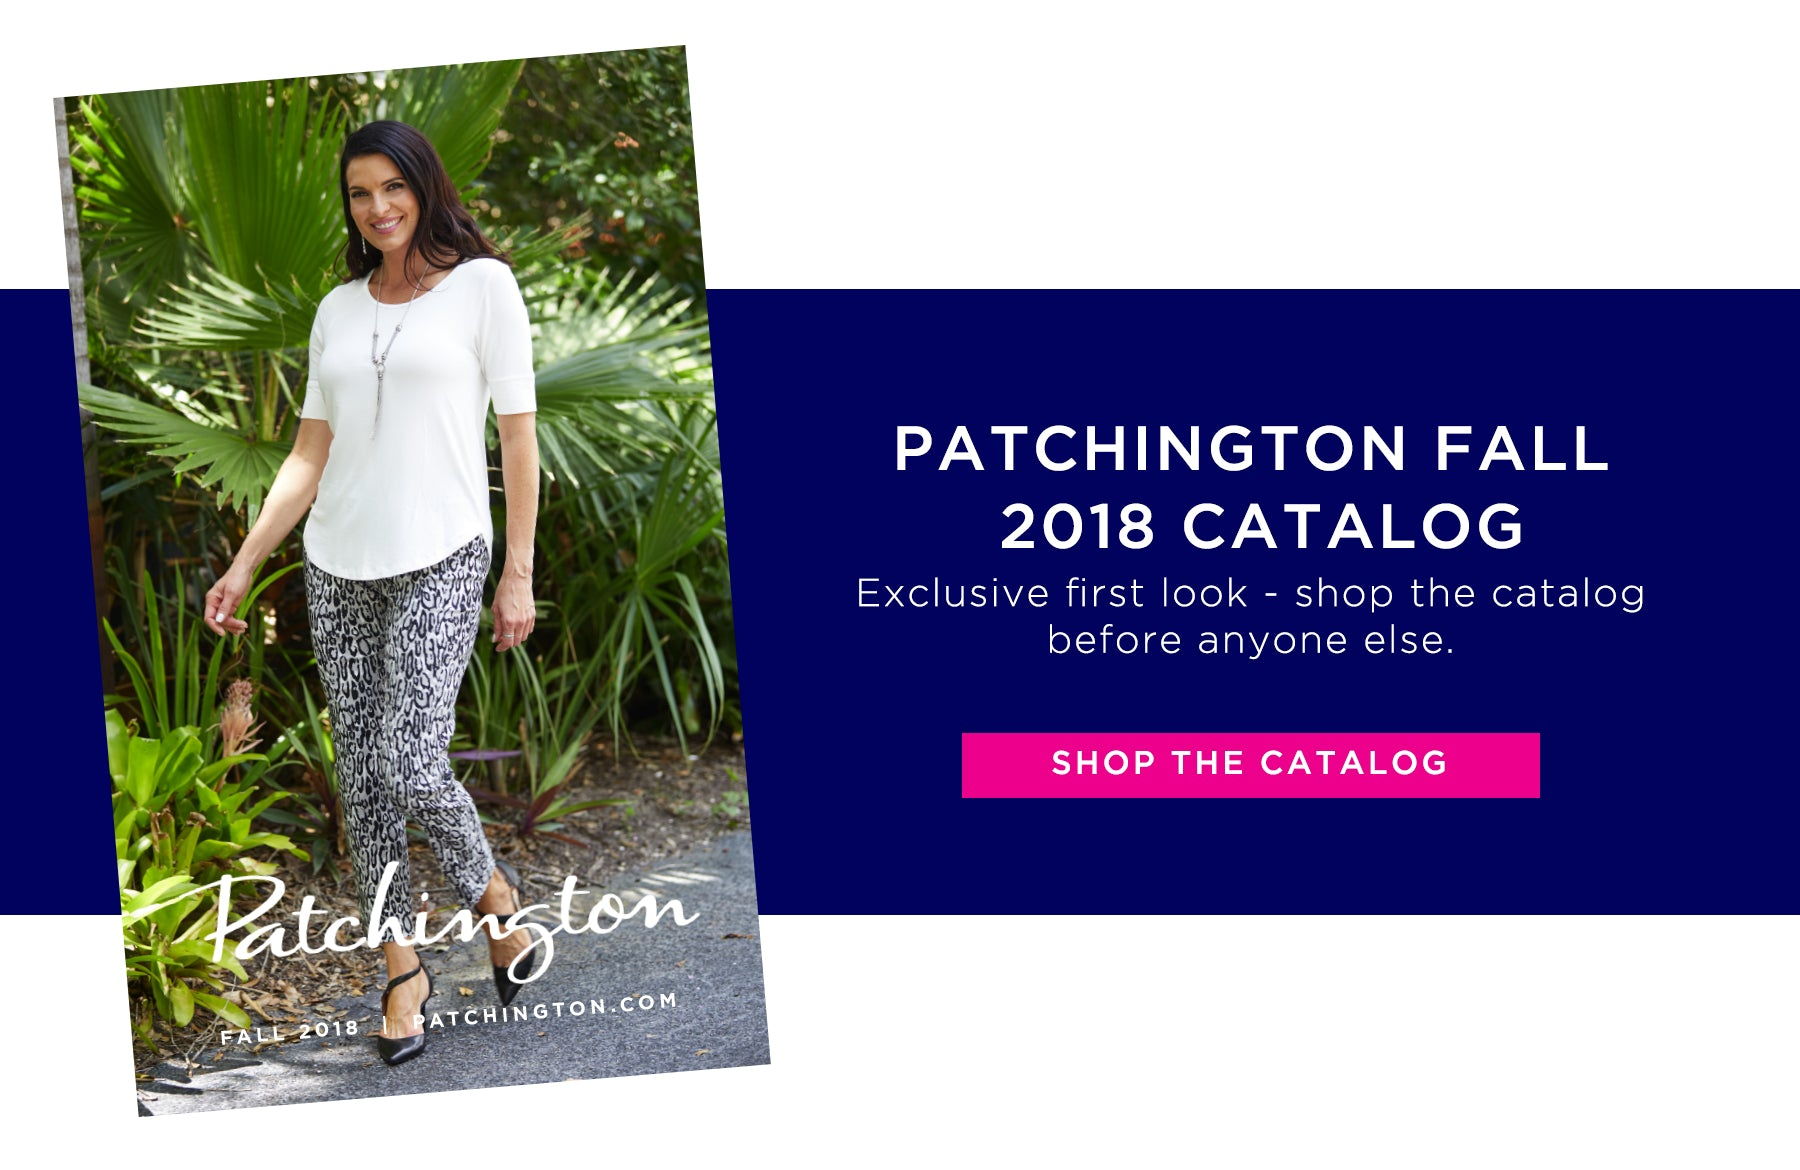 SHOP THE CATALOG